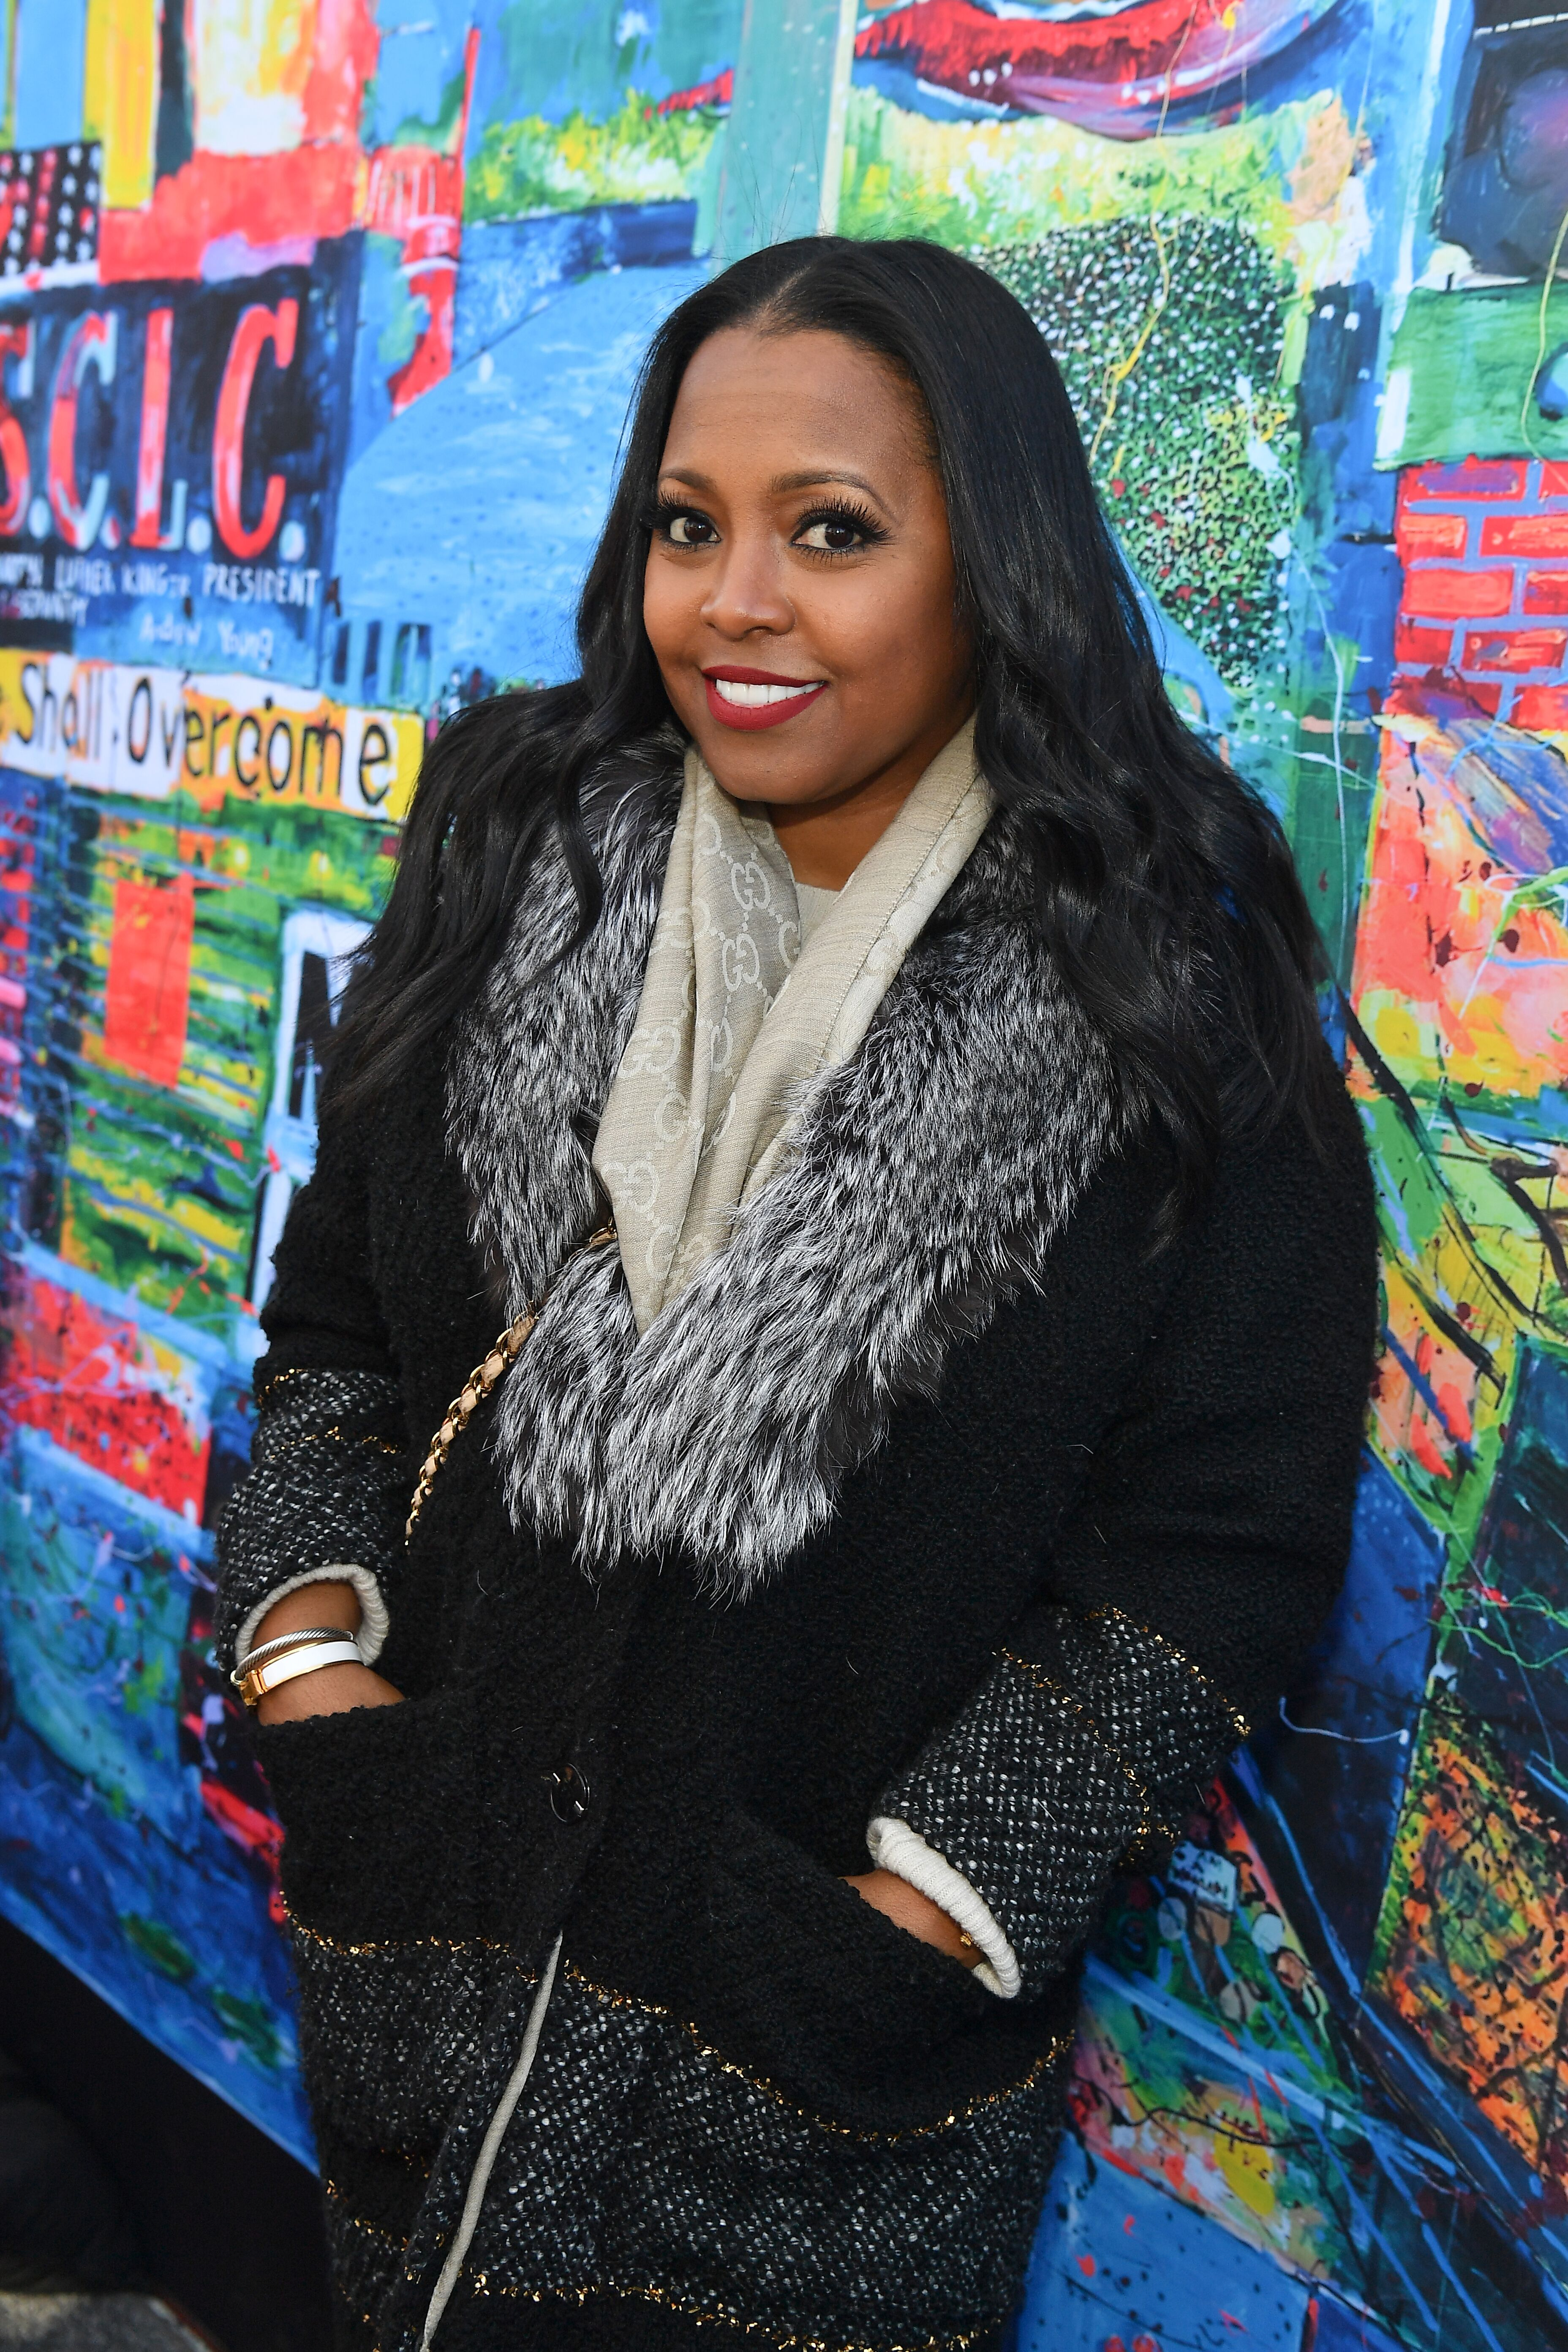 Actress Keshia Knight Pulliam attends Comcast NBCUniversal Exclusive Digital Mosaic during 2019 Martin Luther King, Jr. Annual Commemorative Service & Parade at Ebenezer Baptist Church on January 21, 2019 | Photo: Getty Images